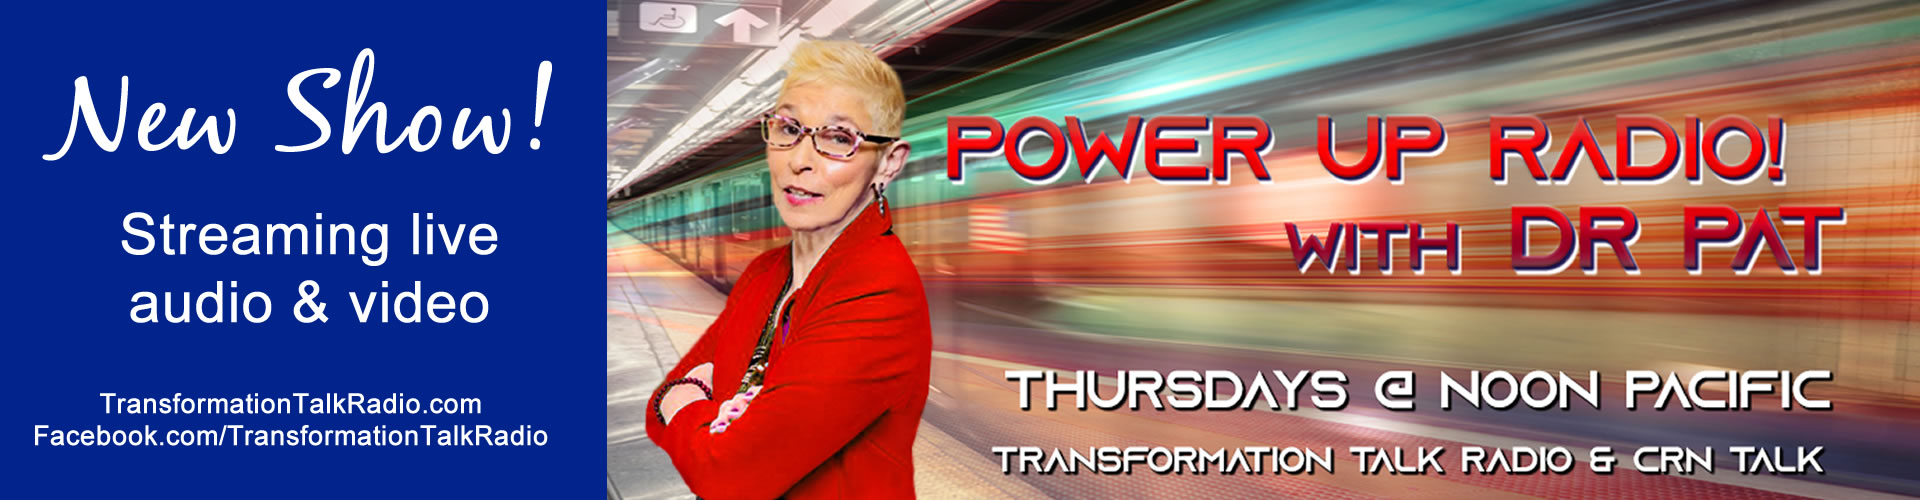 power up radio with dr. pat on crn talk